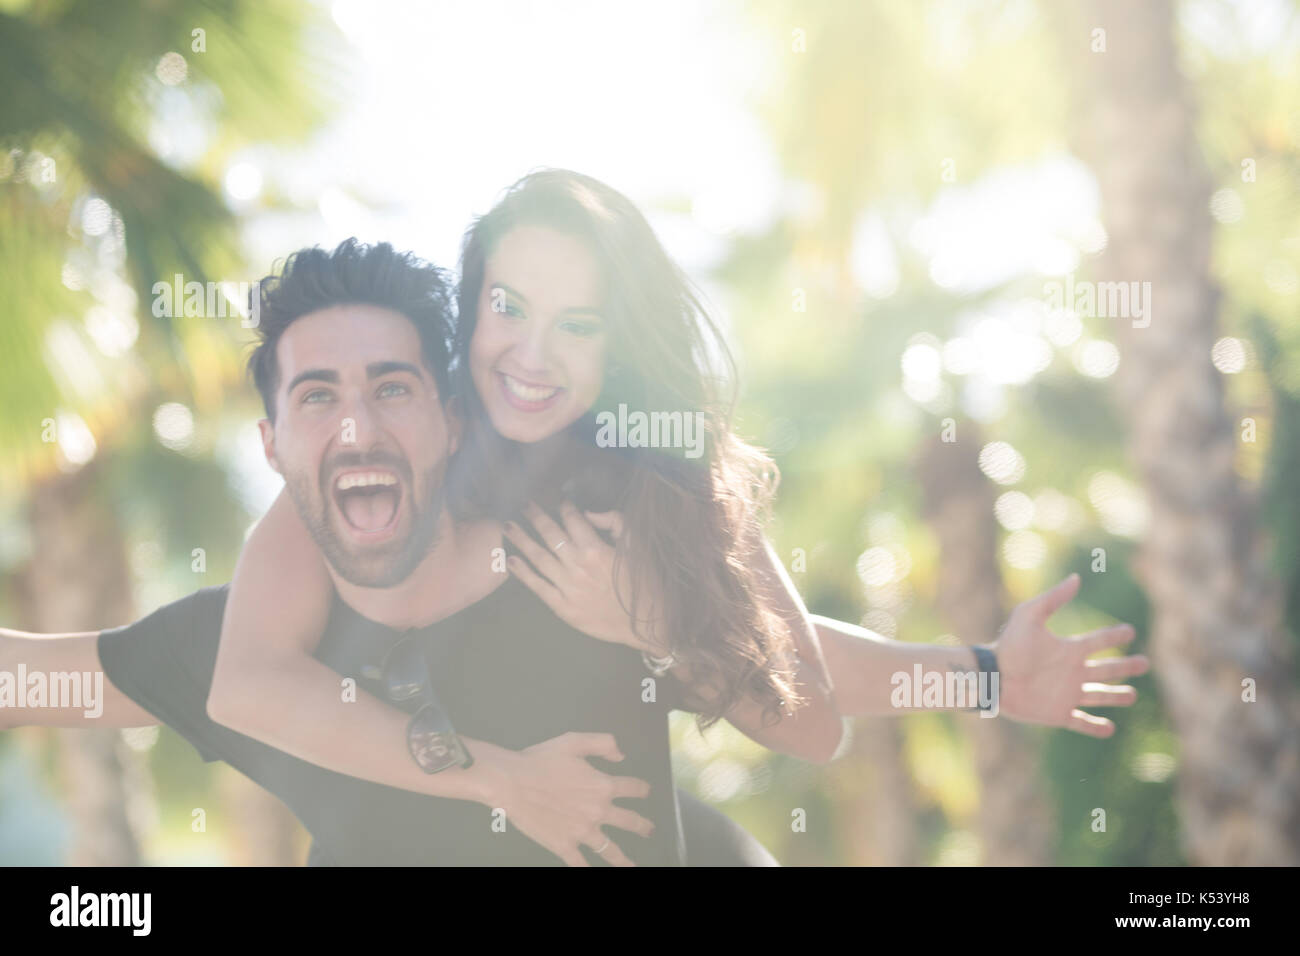 Portrait of happy man with spread arms giving his girlfriend a piggy back ride - Stock Image